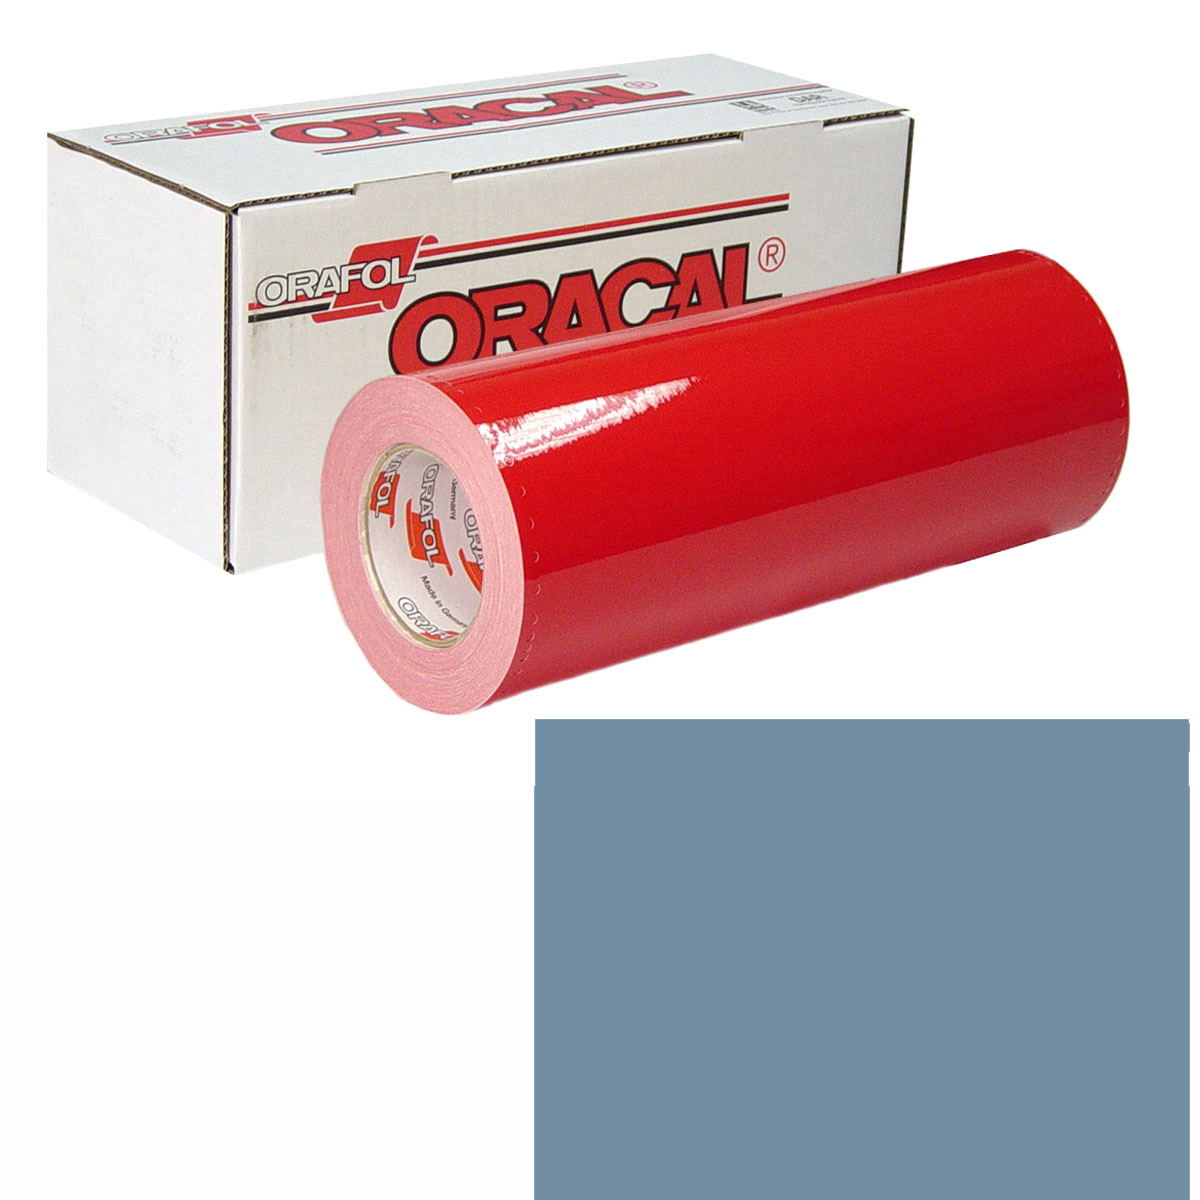 ORACAL 951 15In X 50Yd 549 Dove Blue